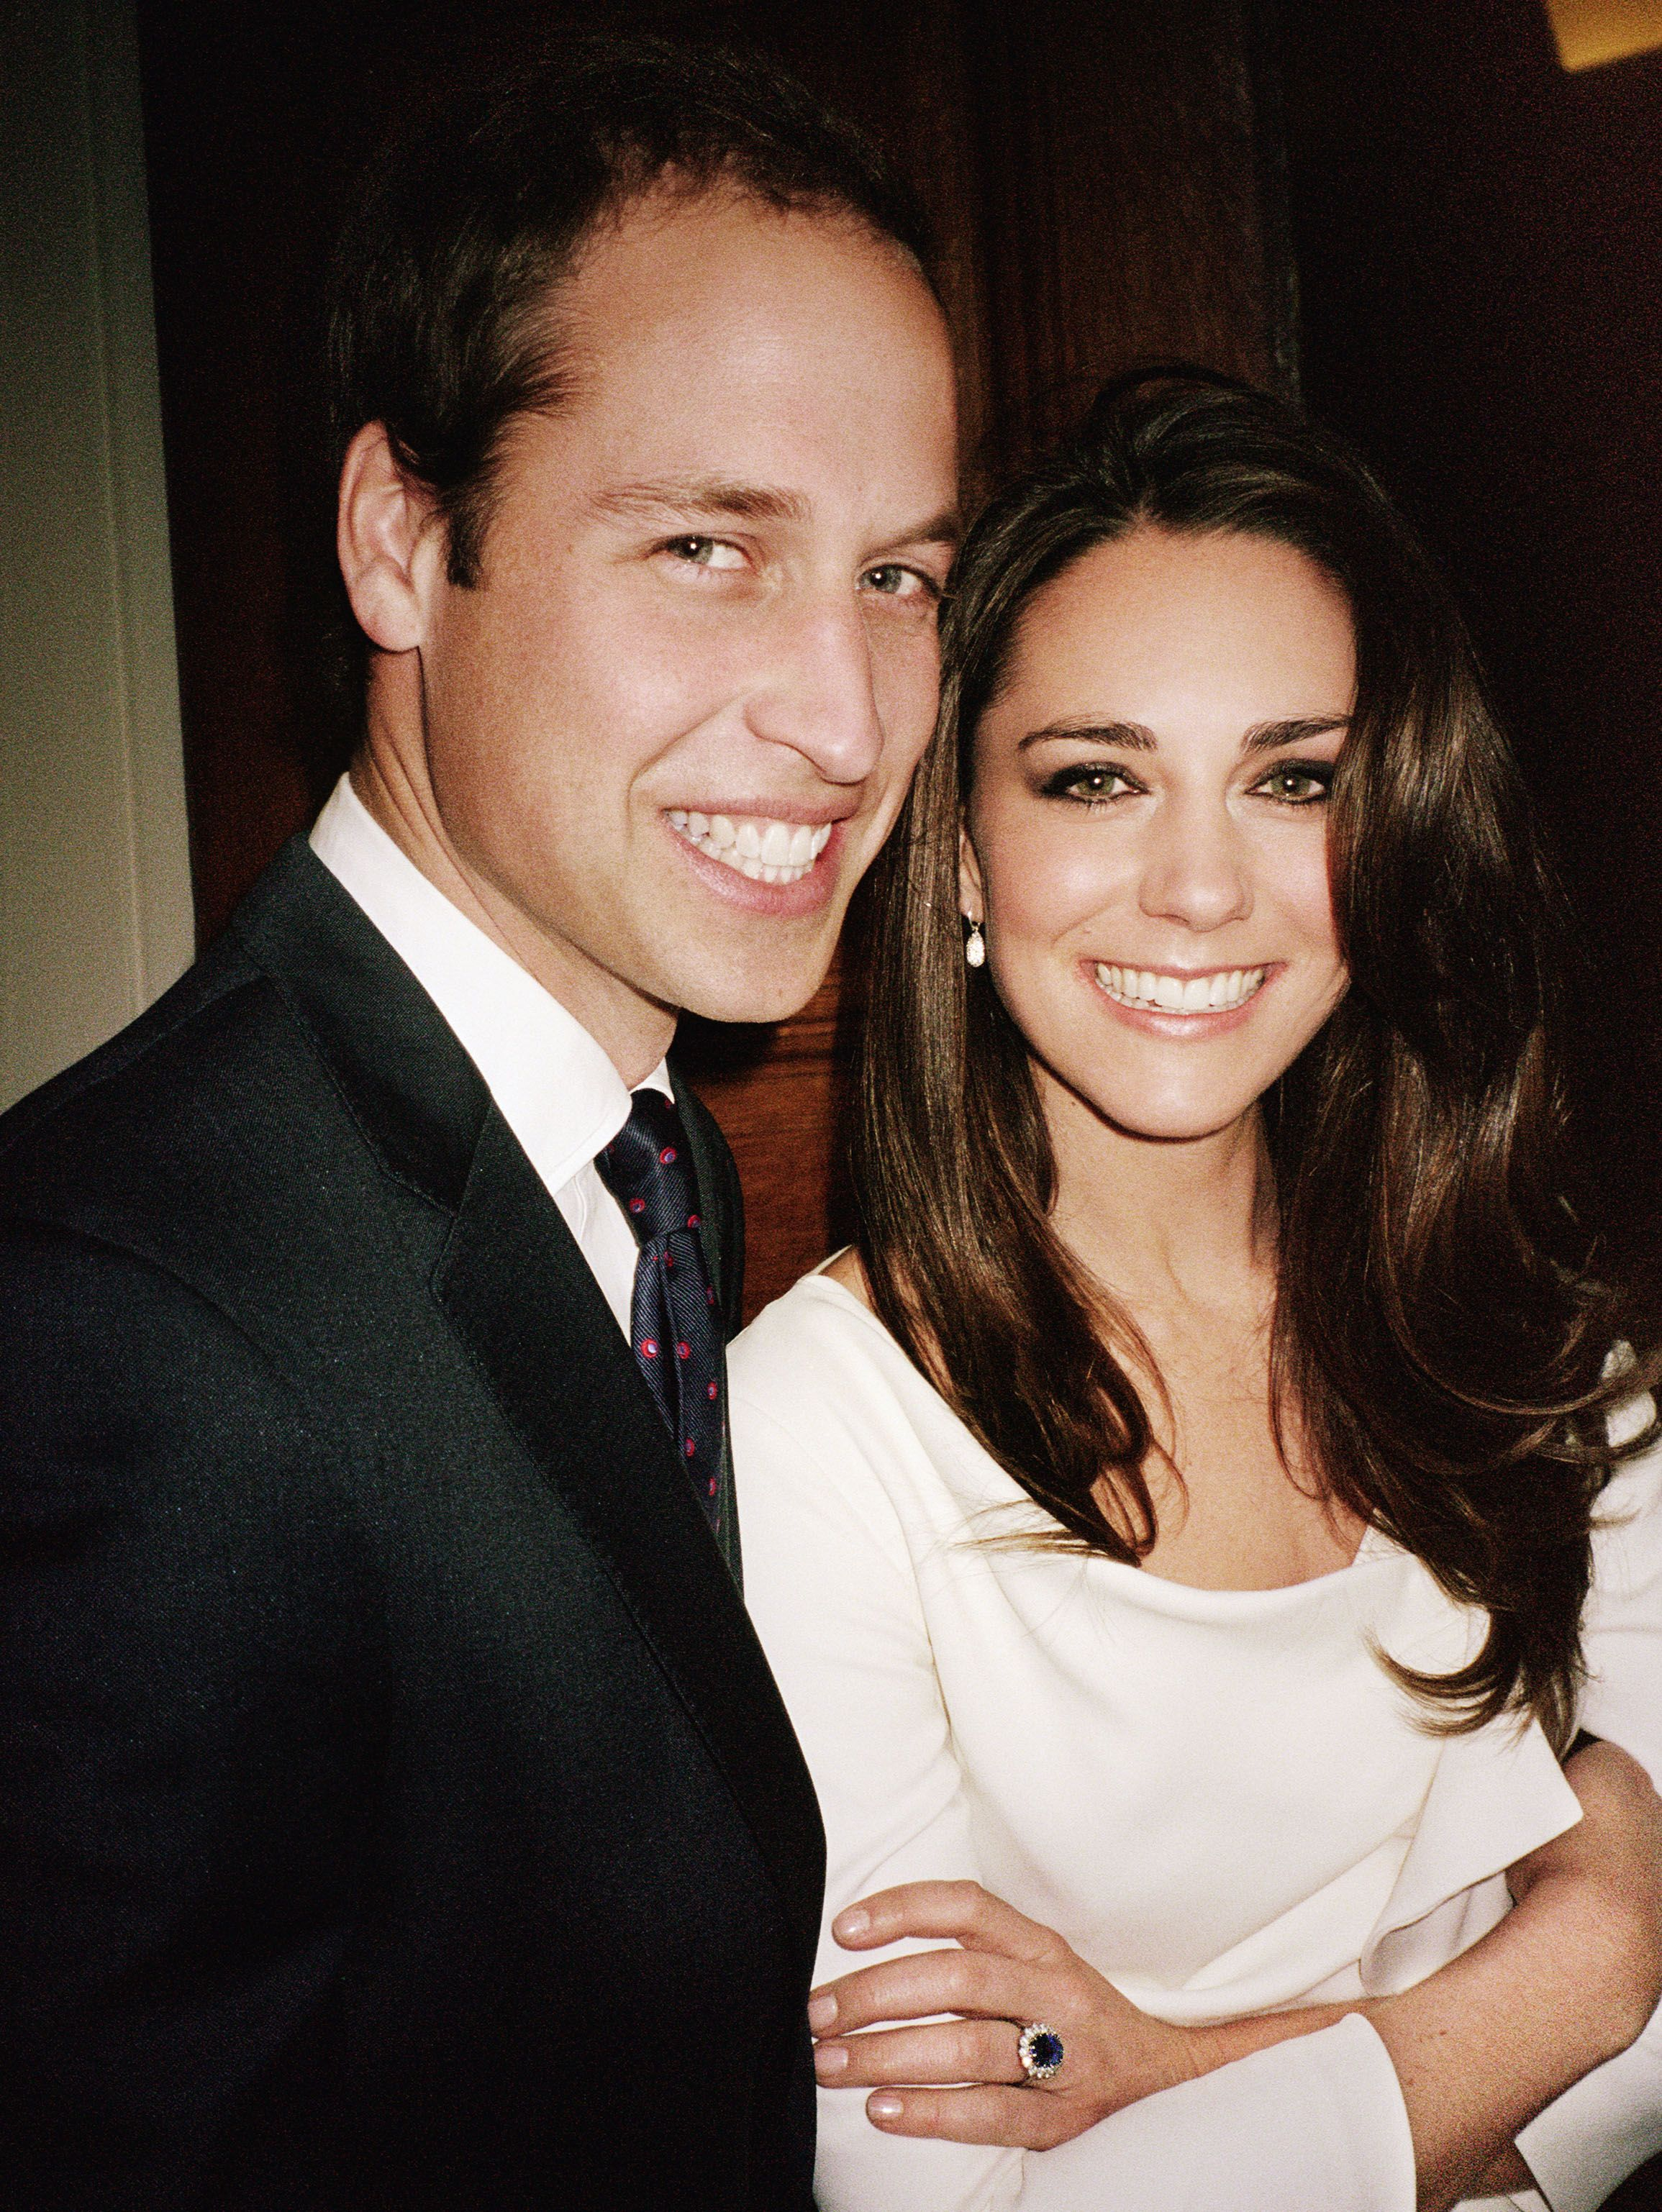 Mario+Testino+Talks+Muses+and+Models+(and+the+New+Kate+Moss)+at+His+First+US+Exhibition: HRH+The+Duke+&+Duchess+of+Cambridge,+St+James+Palace,+2010